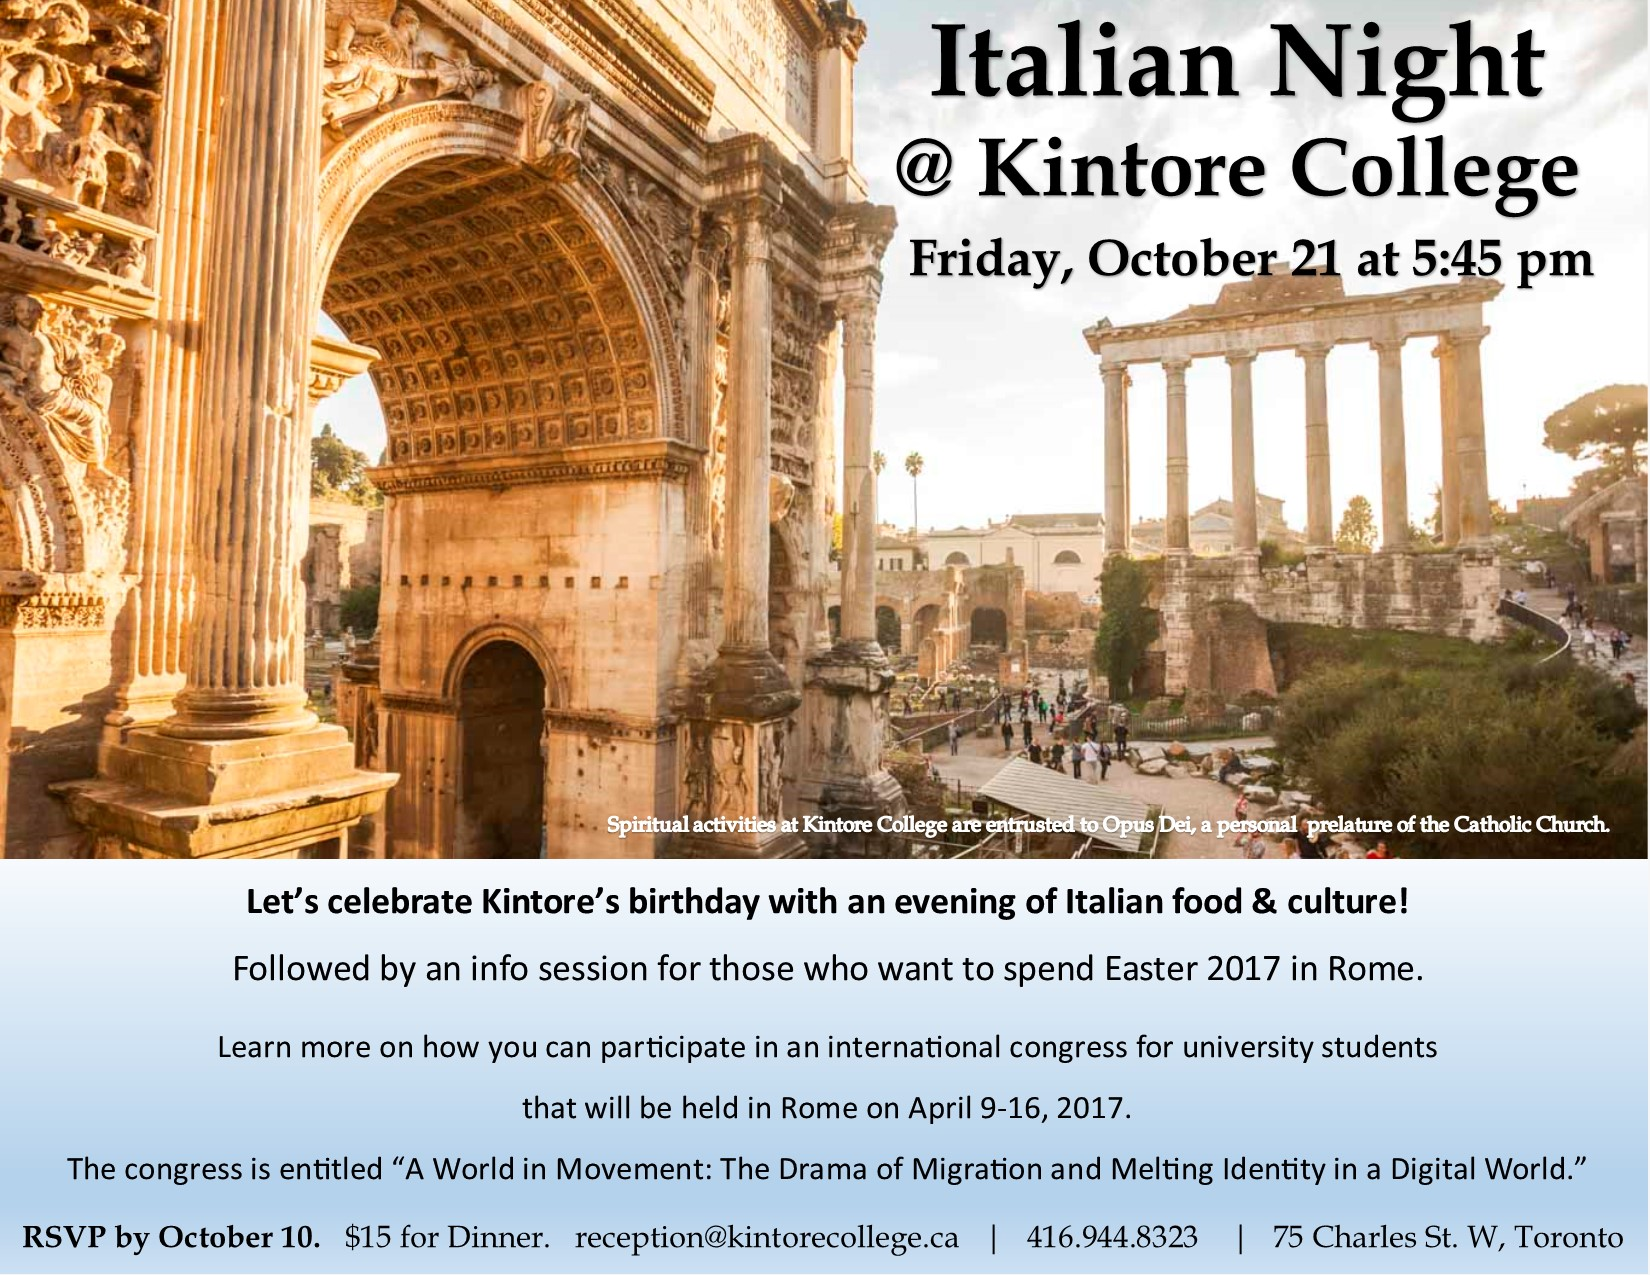 Italian Night at Kintore College, Oct 21, 2016